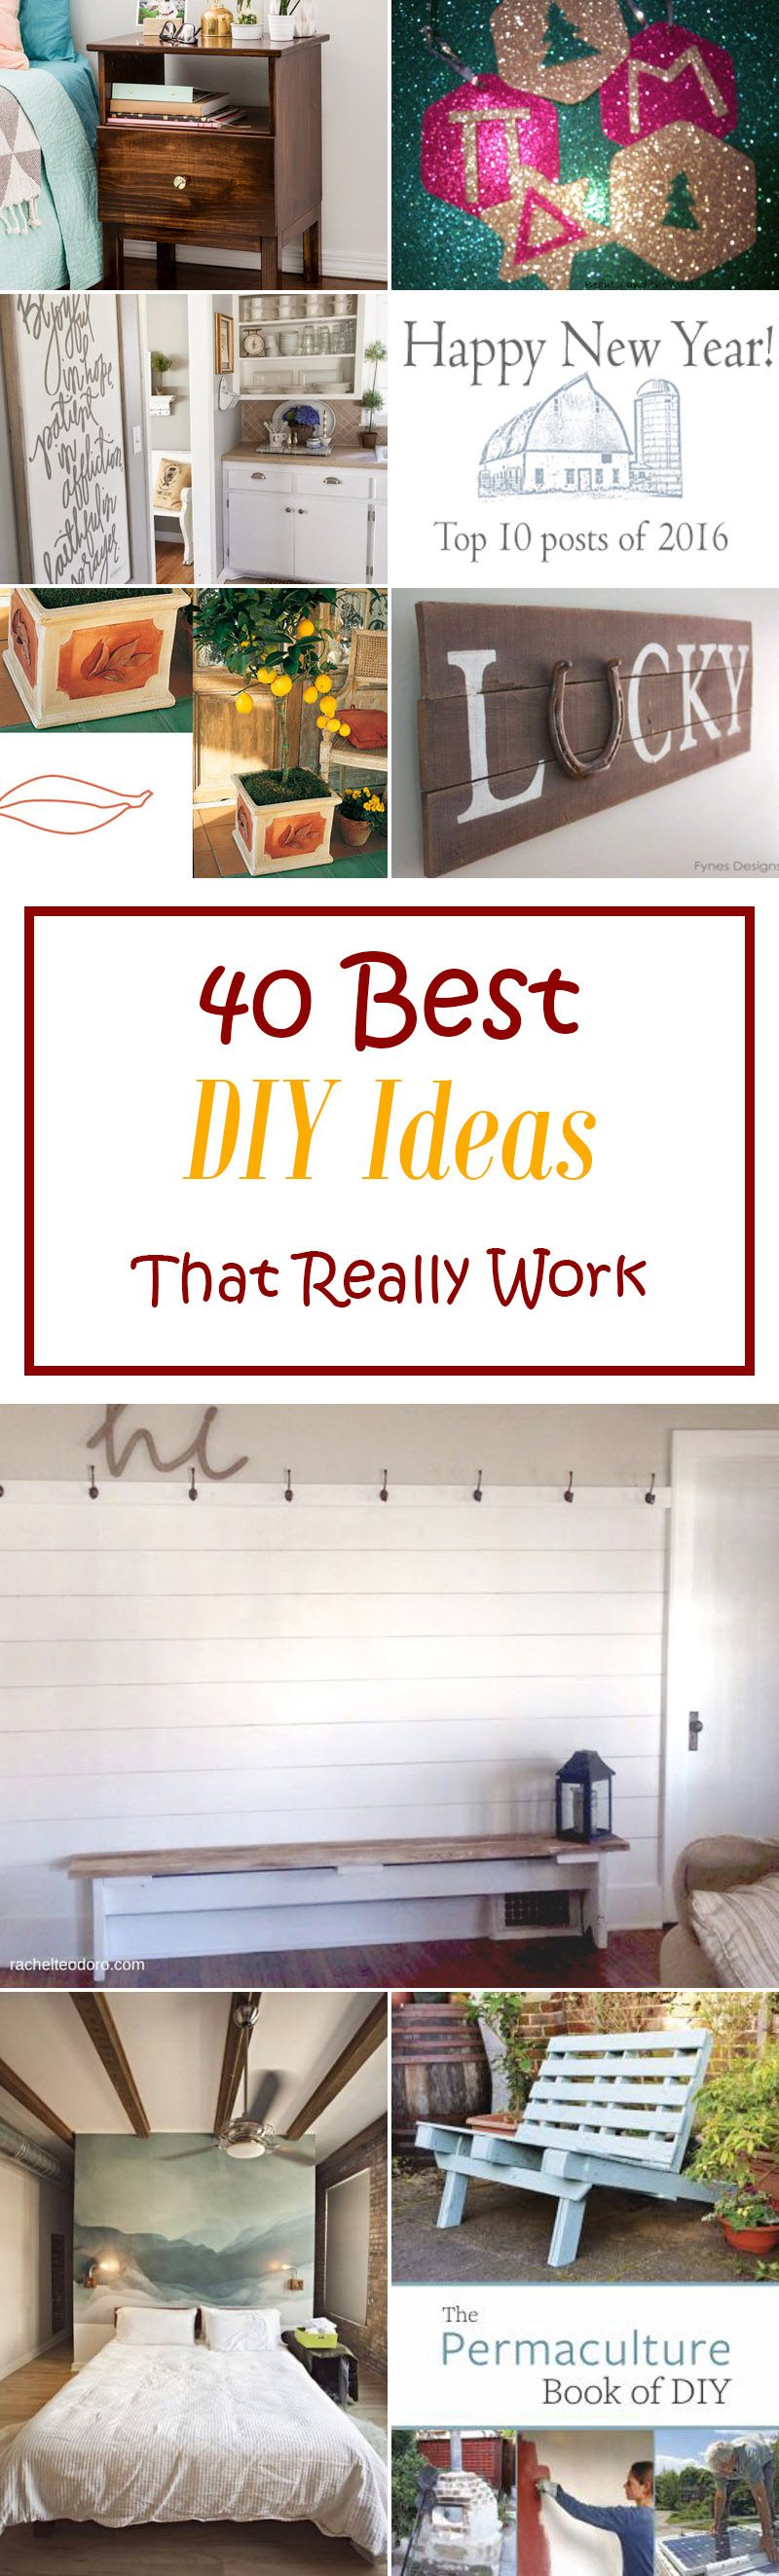 40 Best Diy Ideas That Really Work